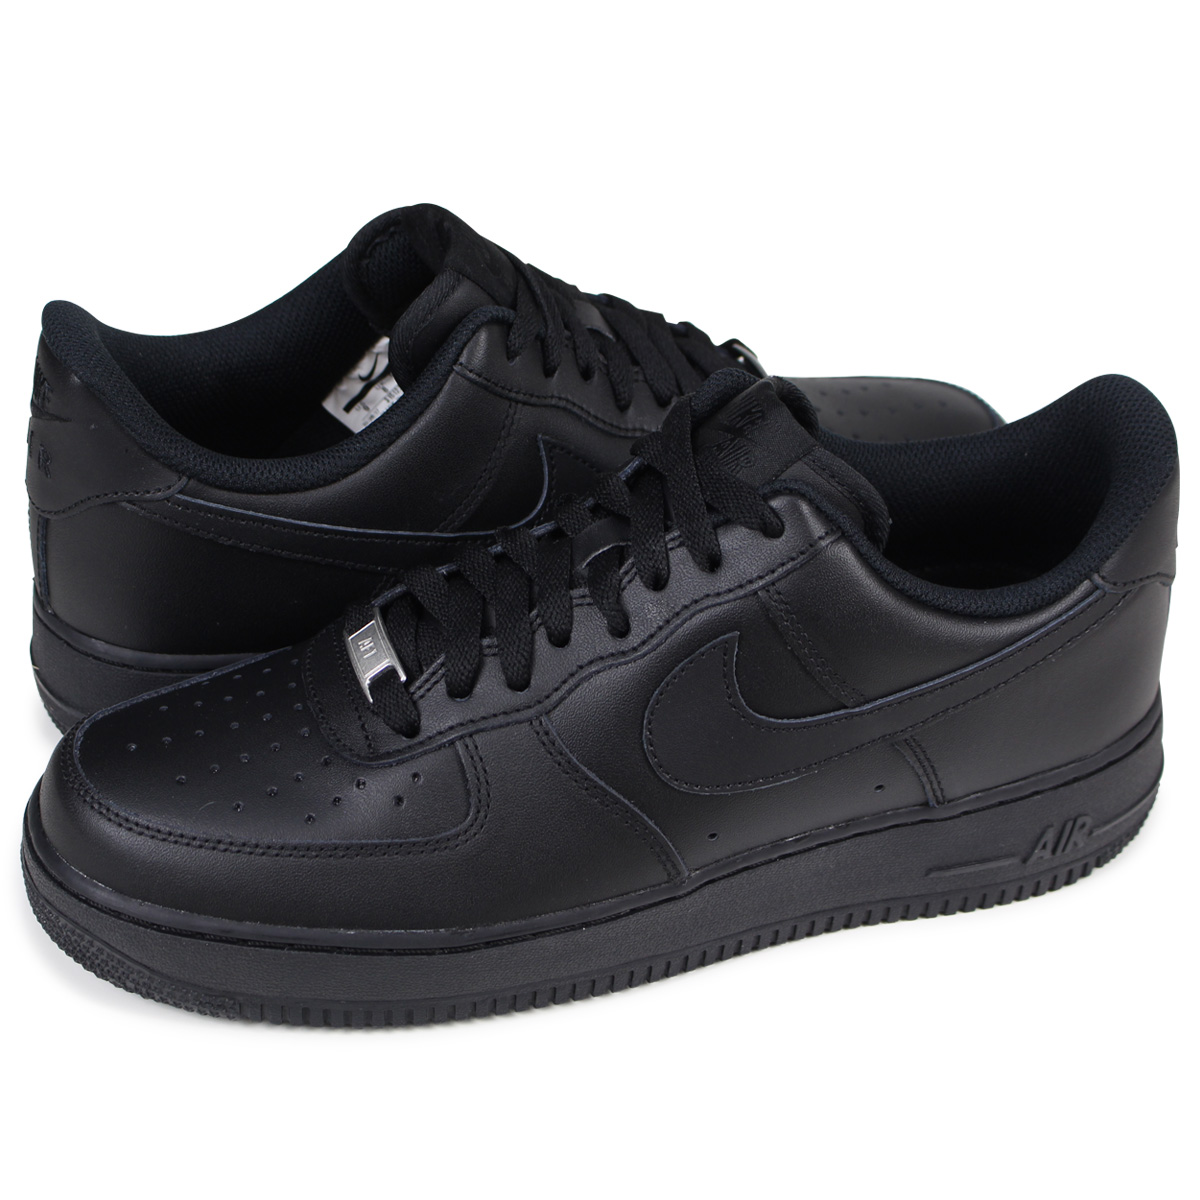 8bda3e0b2 Whats up Sports  NIKE AIR FORCE 1 LOW Nike air force 1 07 sneakers ...